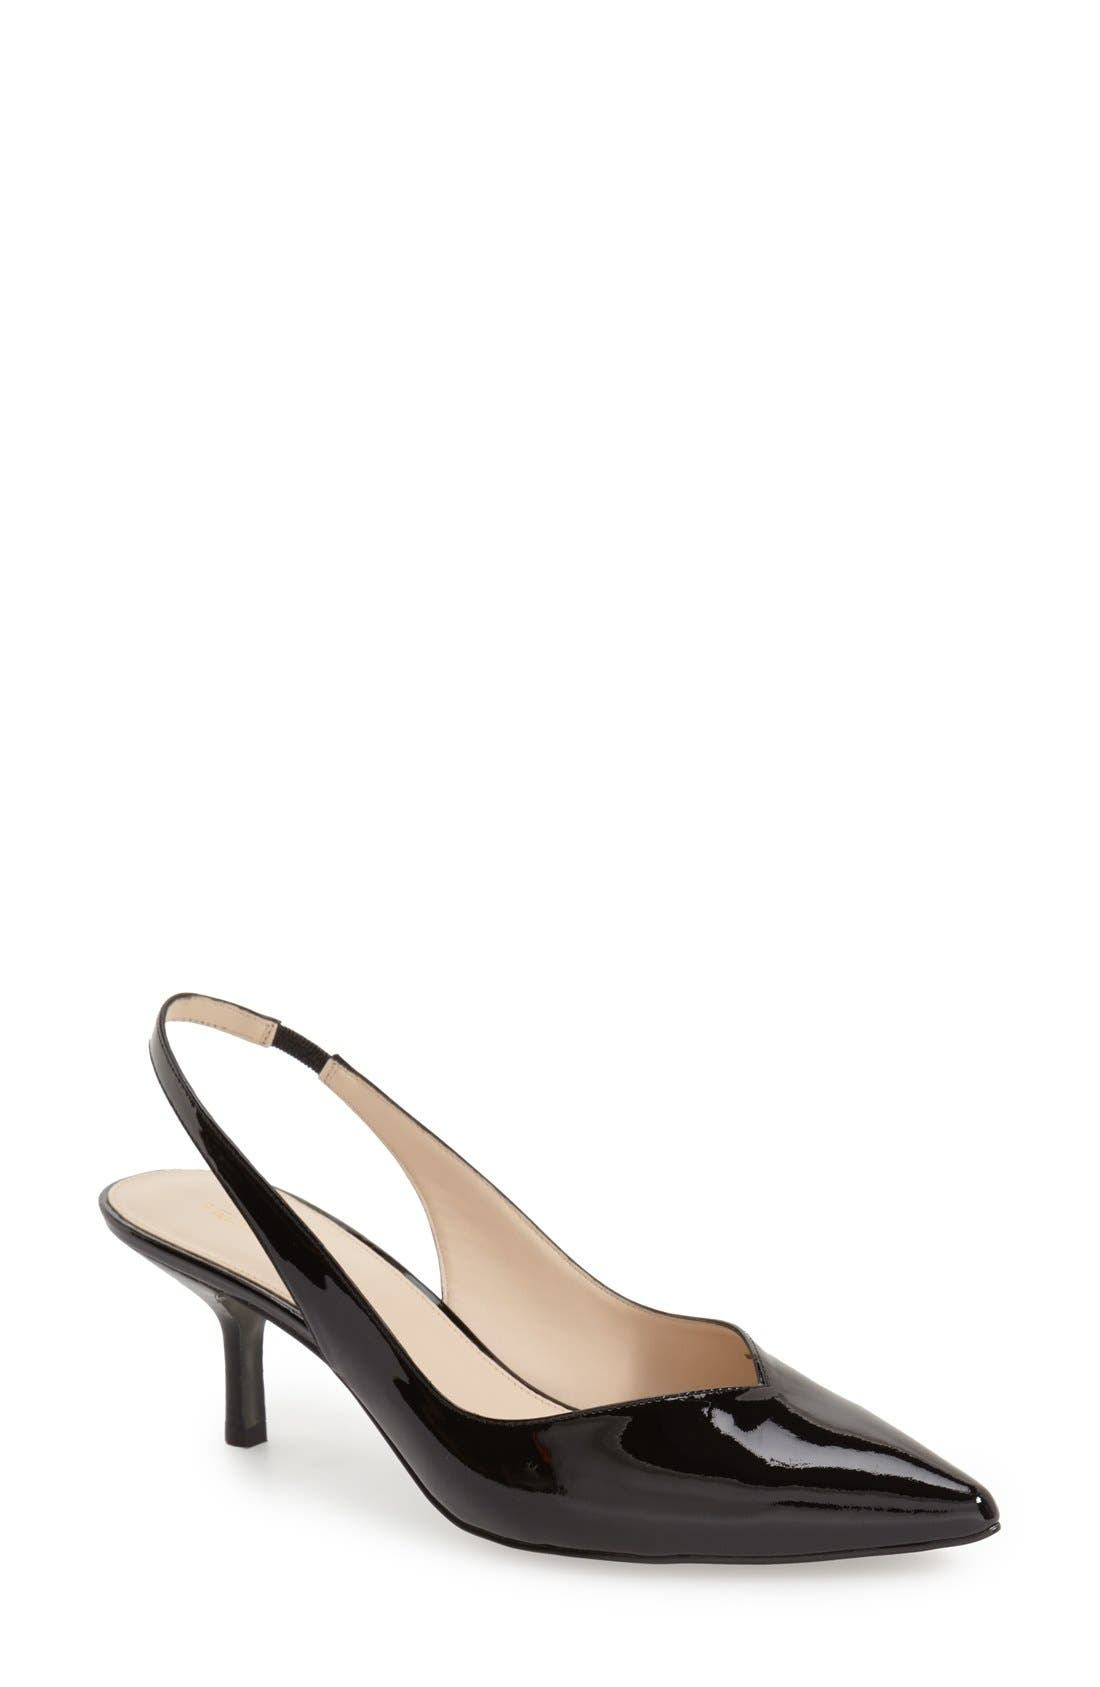 'Oasis' Slingback Pump,                         Main,                         color, Black Patent Leather